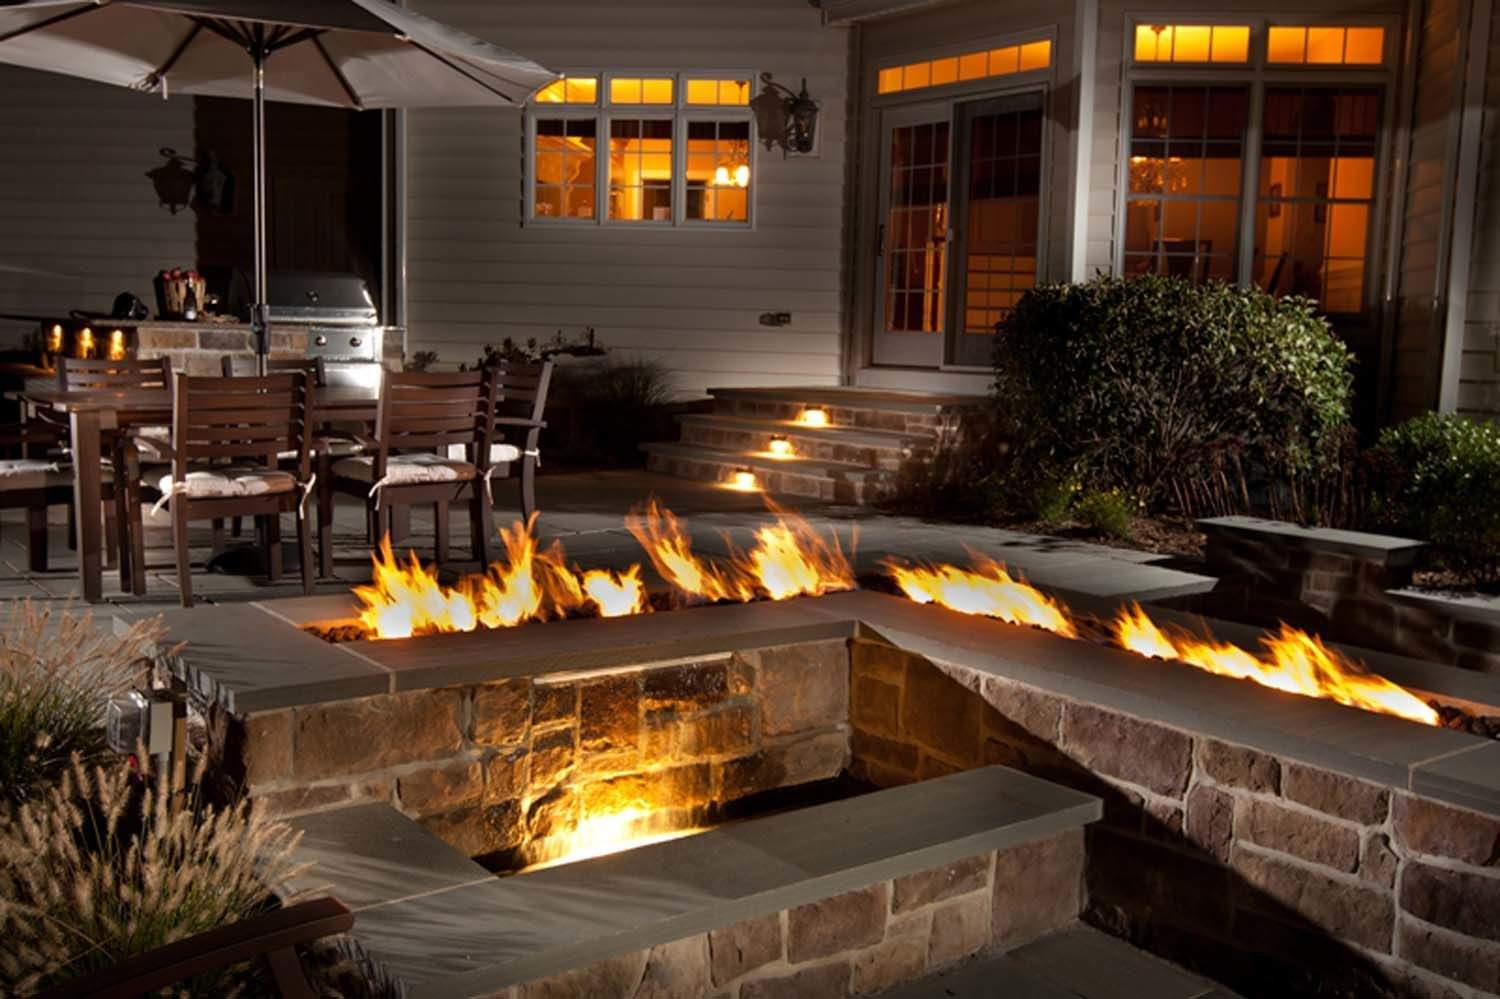 Linear Trough Natural Gas Fire Pit Burner 72 Inch New